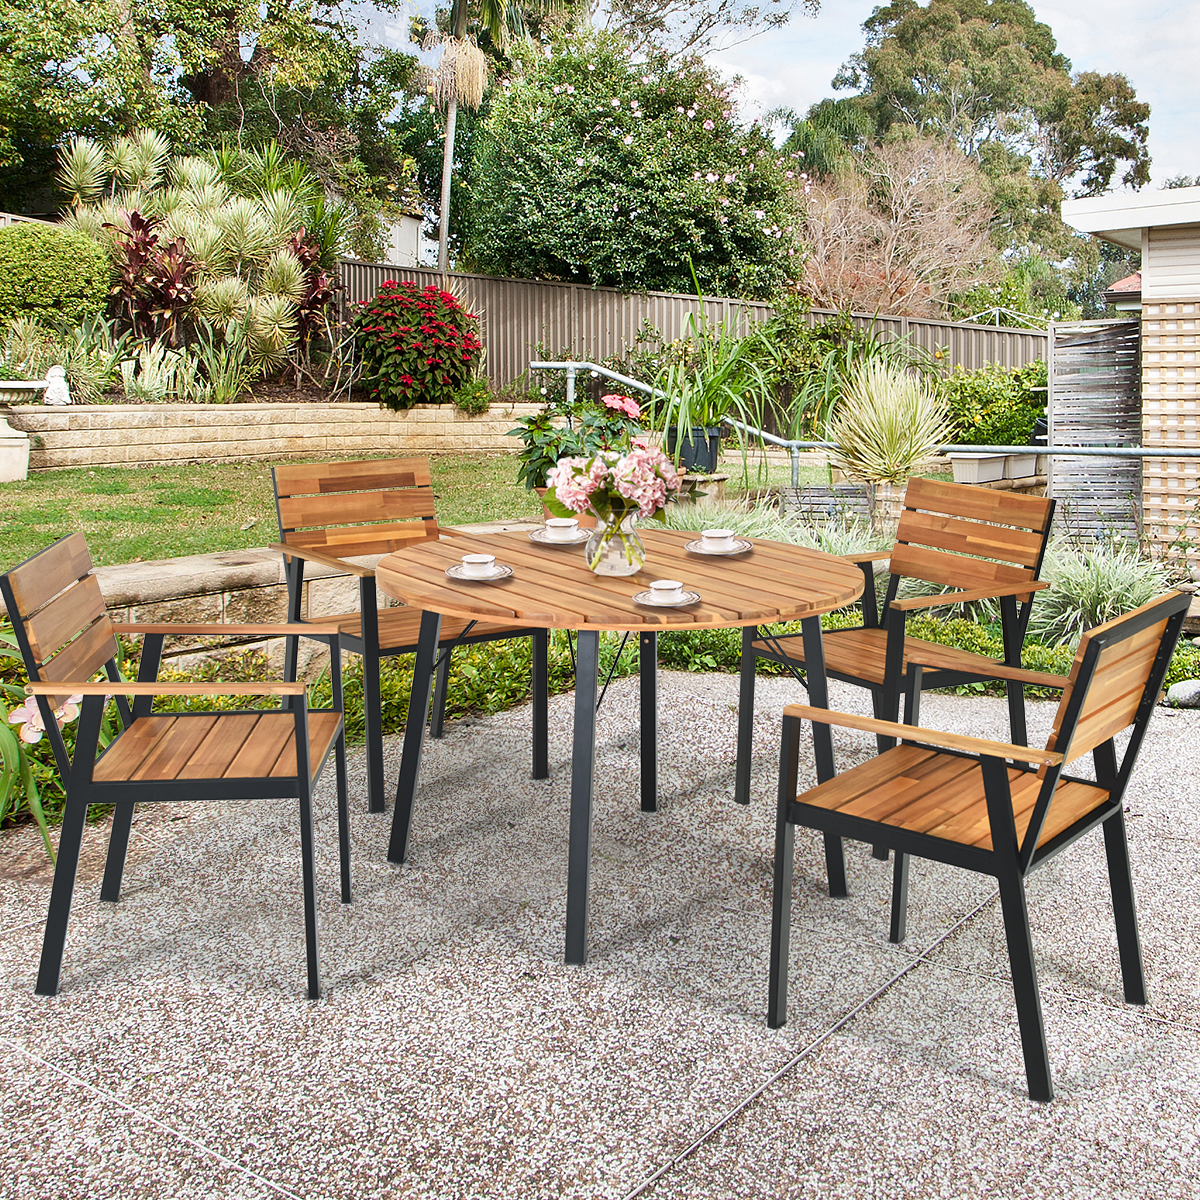 Gymax 9PCS Patio Dining Set Outdoor Dining Furniture Set w ...